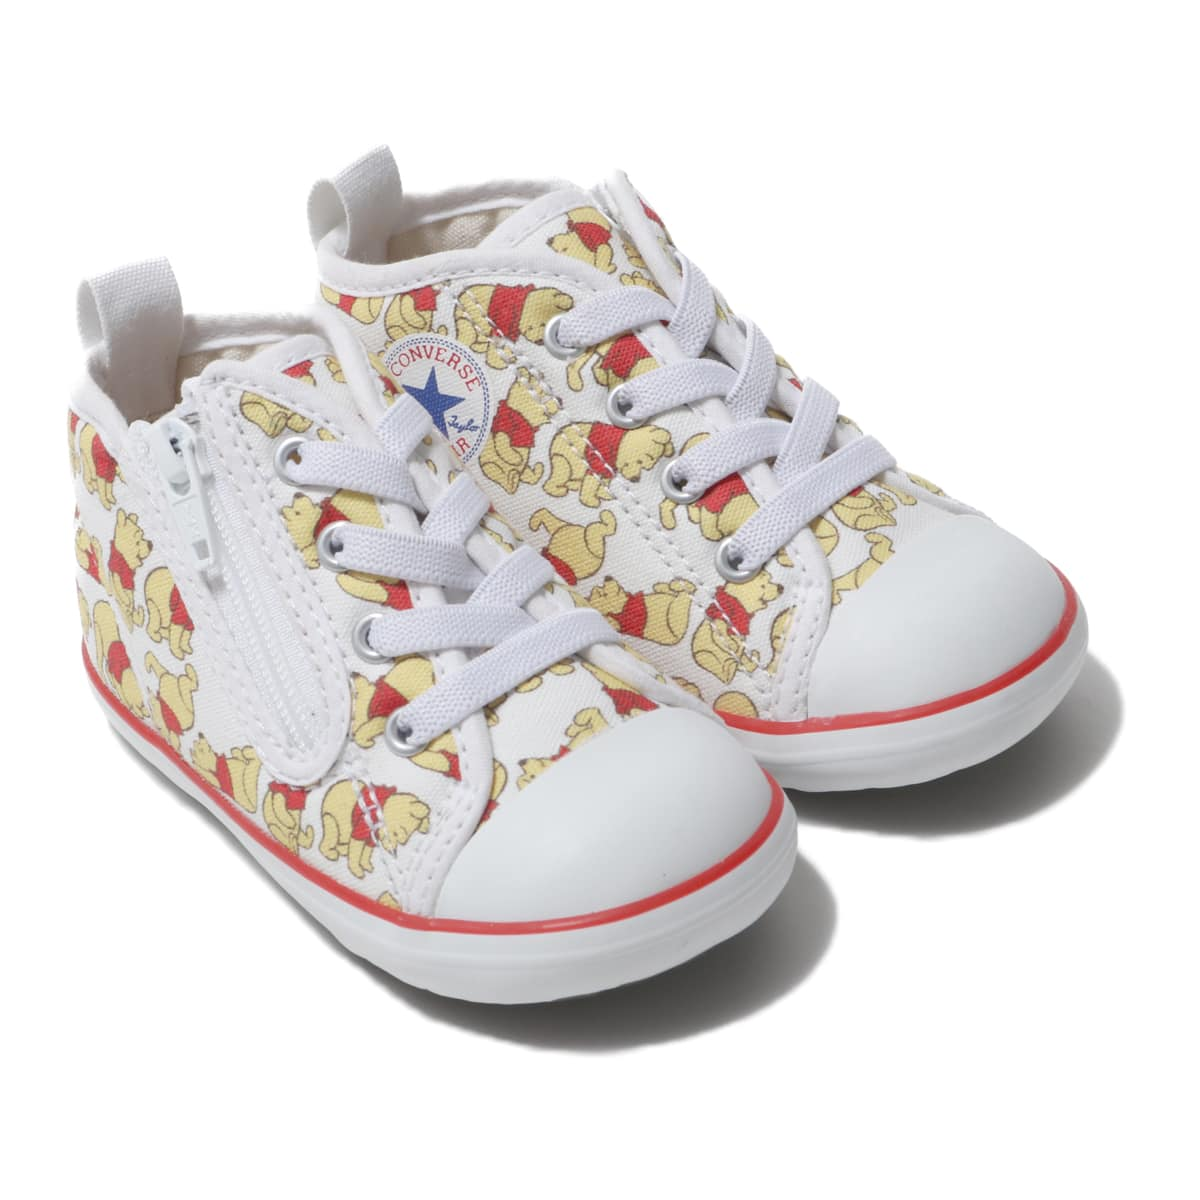 CONVERSE BABY ALL STAR N POOH PT Z WHITE 19FW-I_photo_large